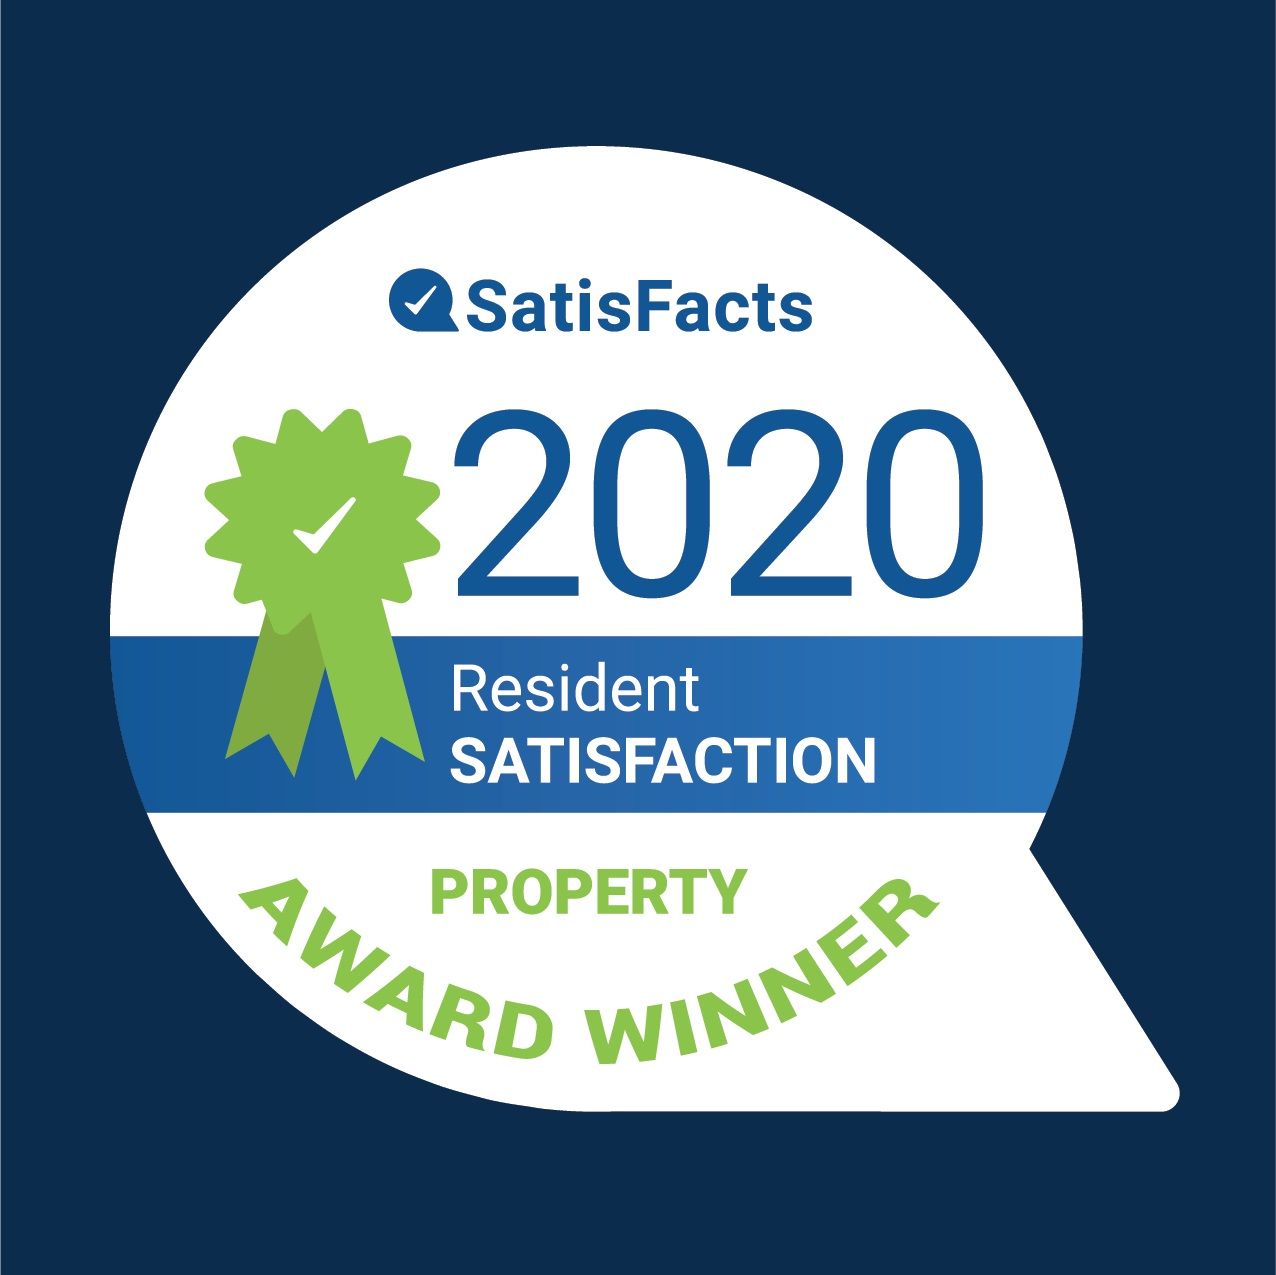 2020 SatisFacts Resident Satisfaction Property Award Winner